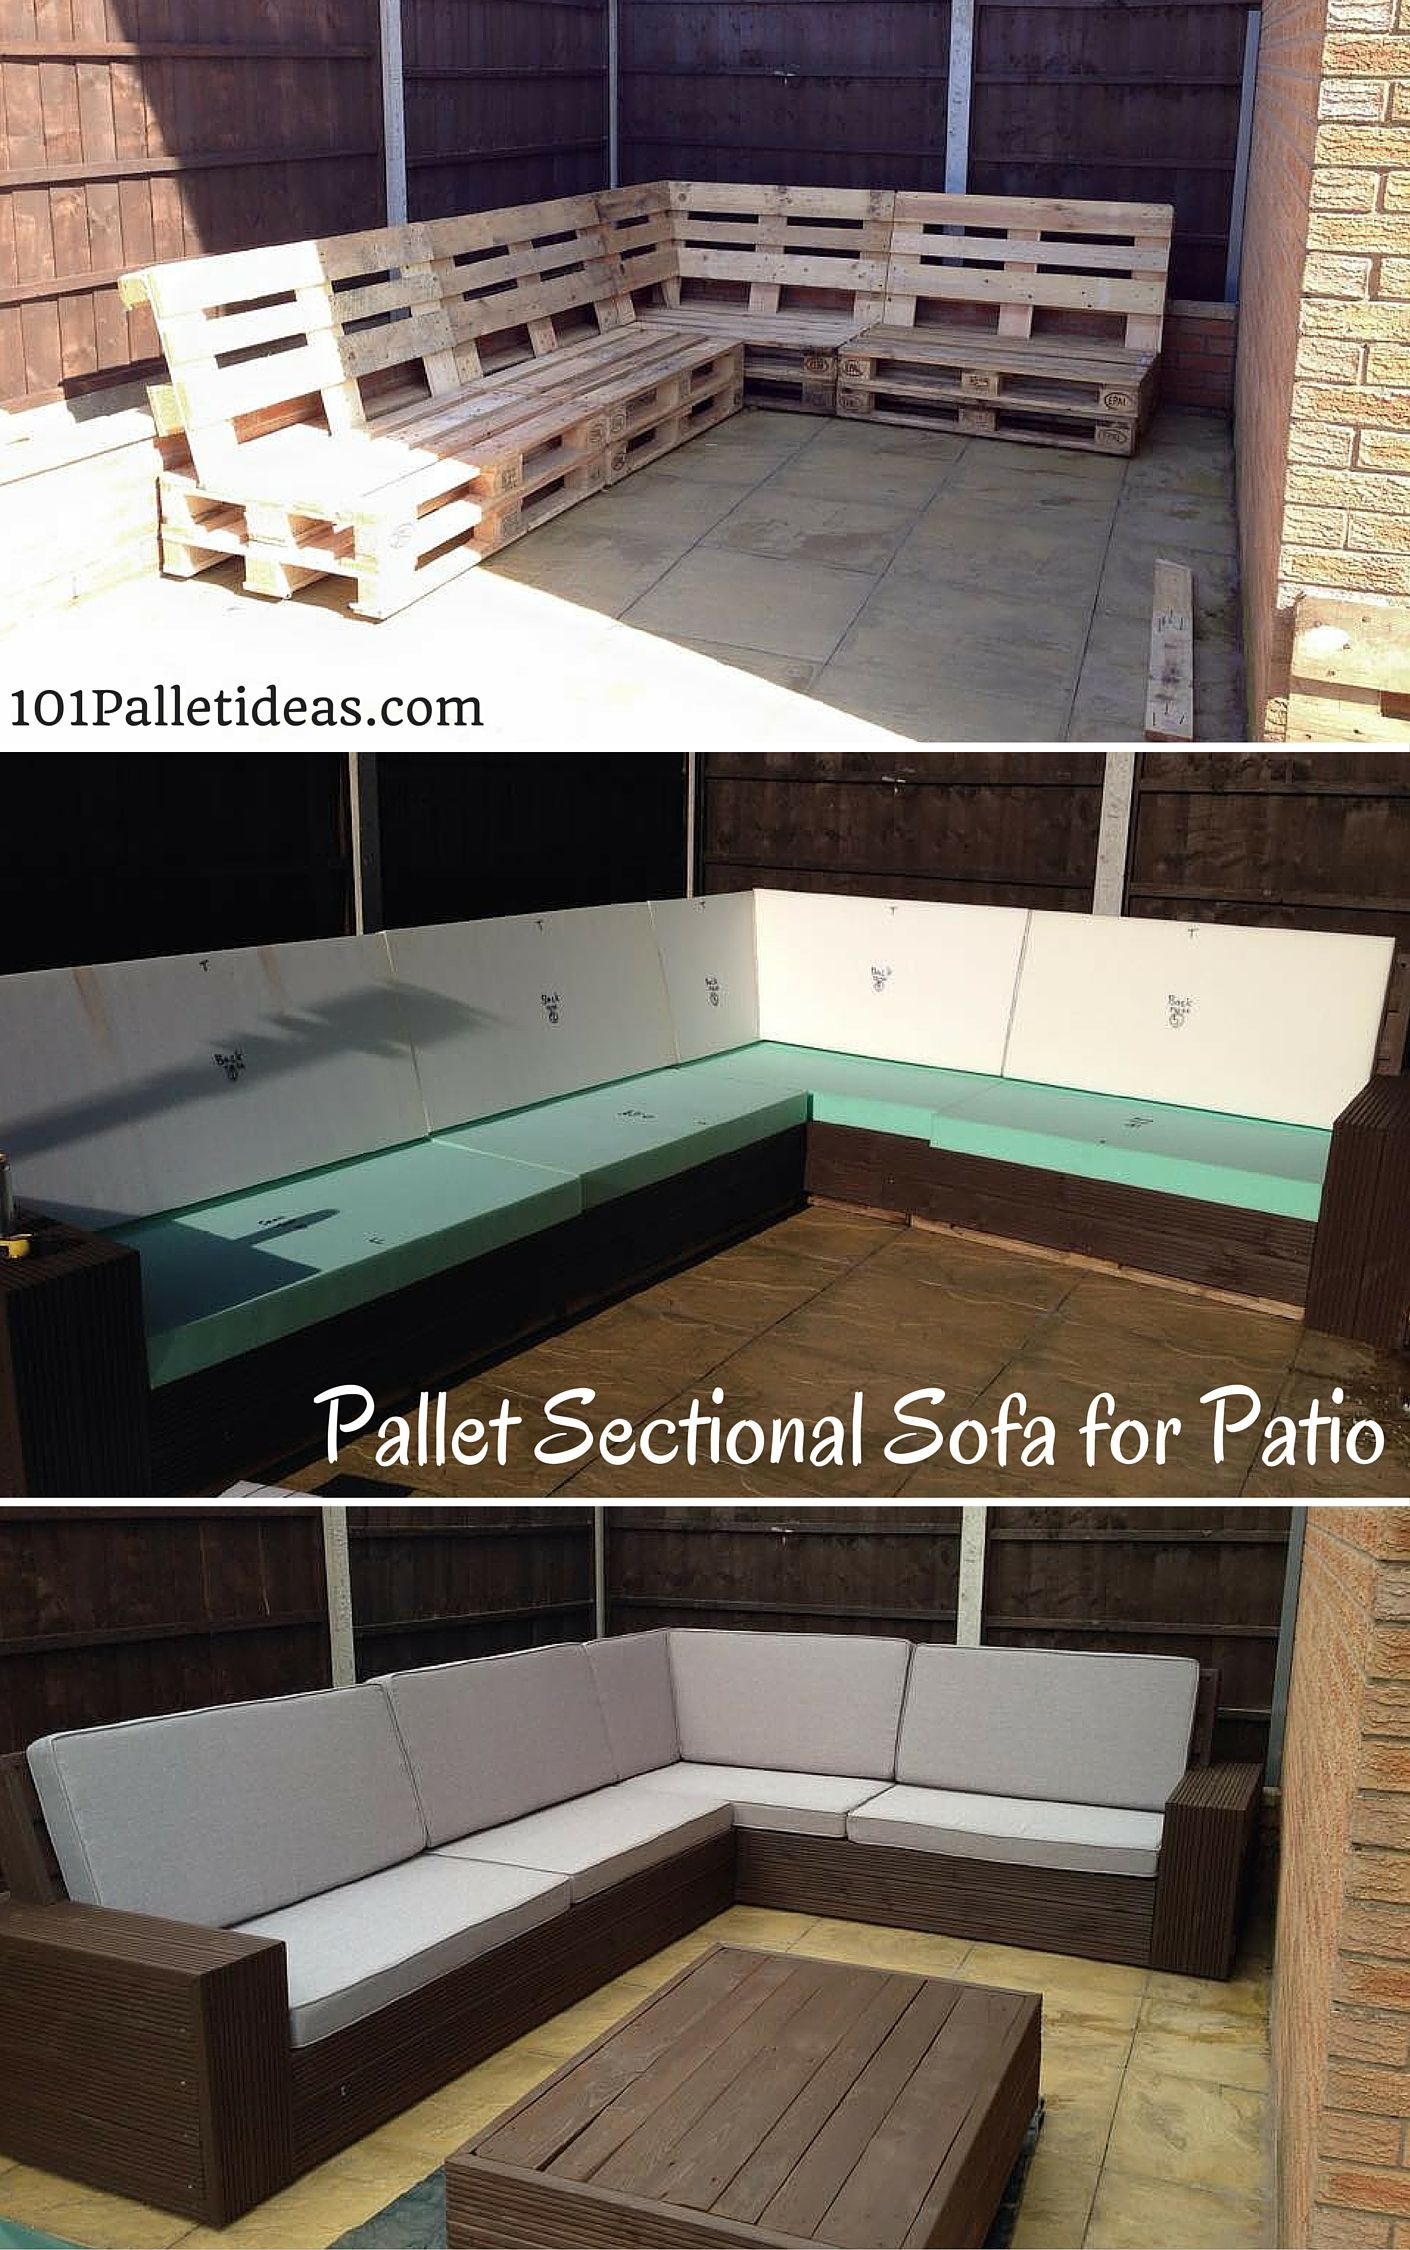 Sofas De Pallets Para Area Externa Diy Pallet Sectional Sofa For Patio Self Installed 8 10 Seater